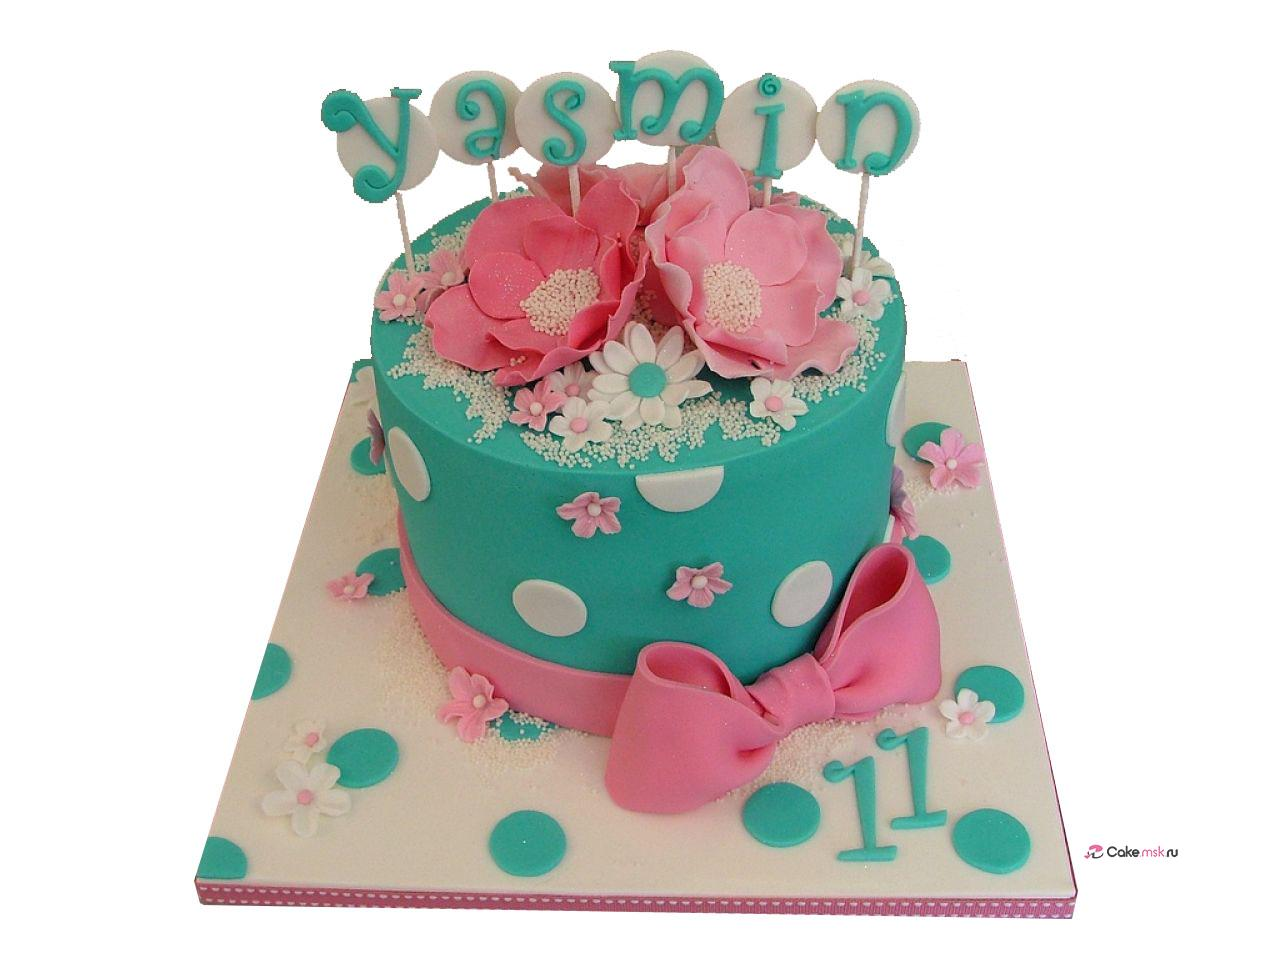 11-year-old-girls-birthday-cake-ideas-55408f4c989a2